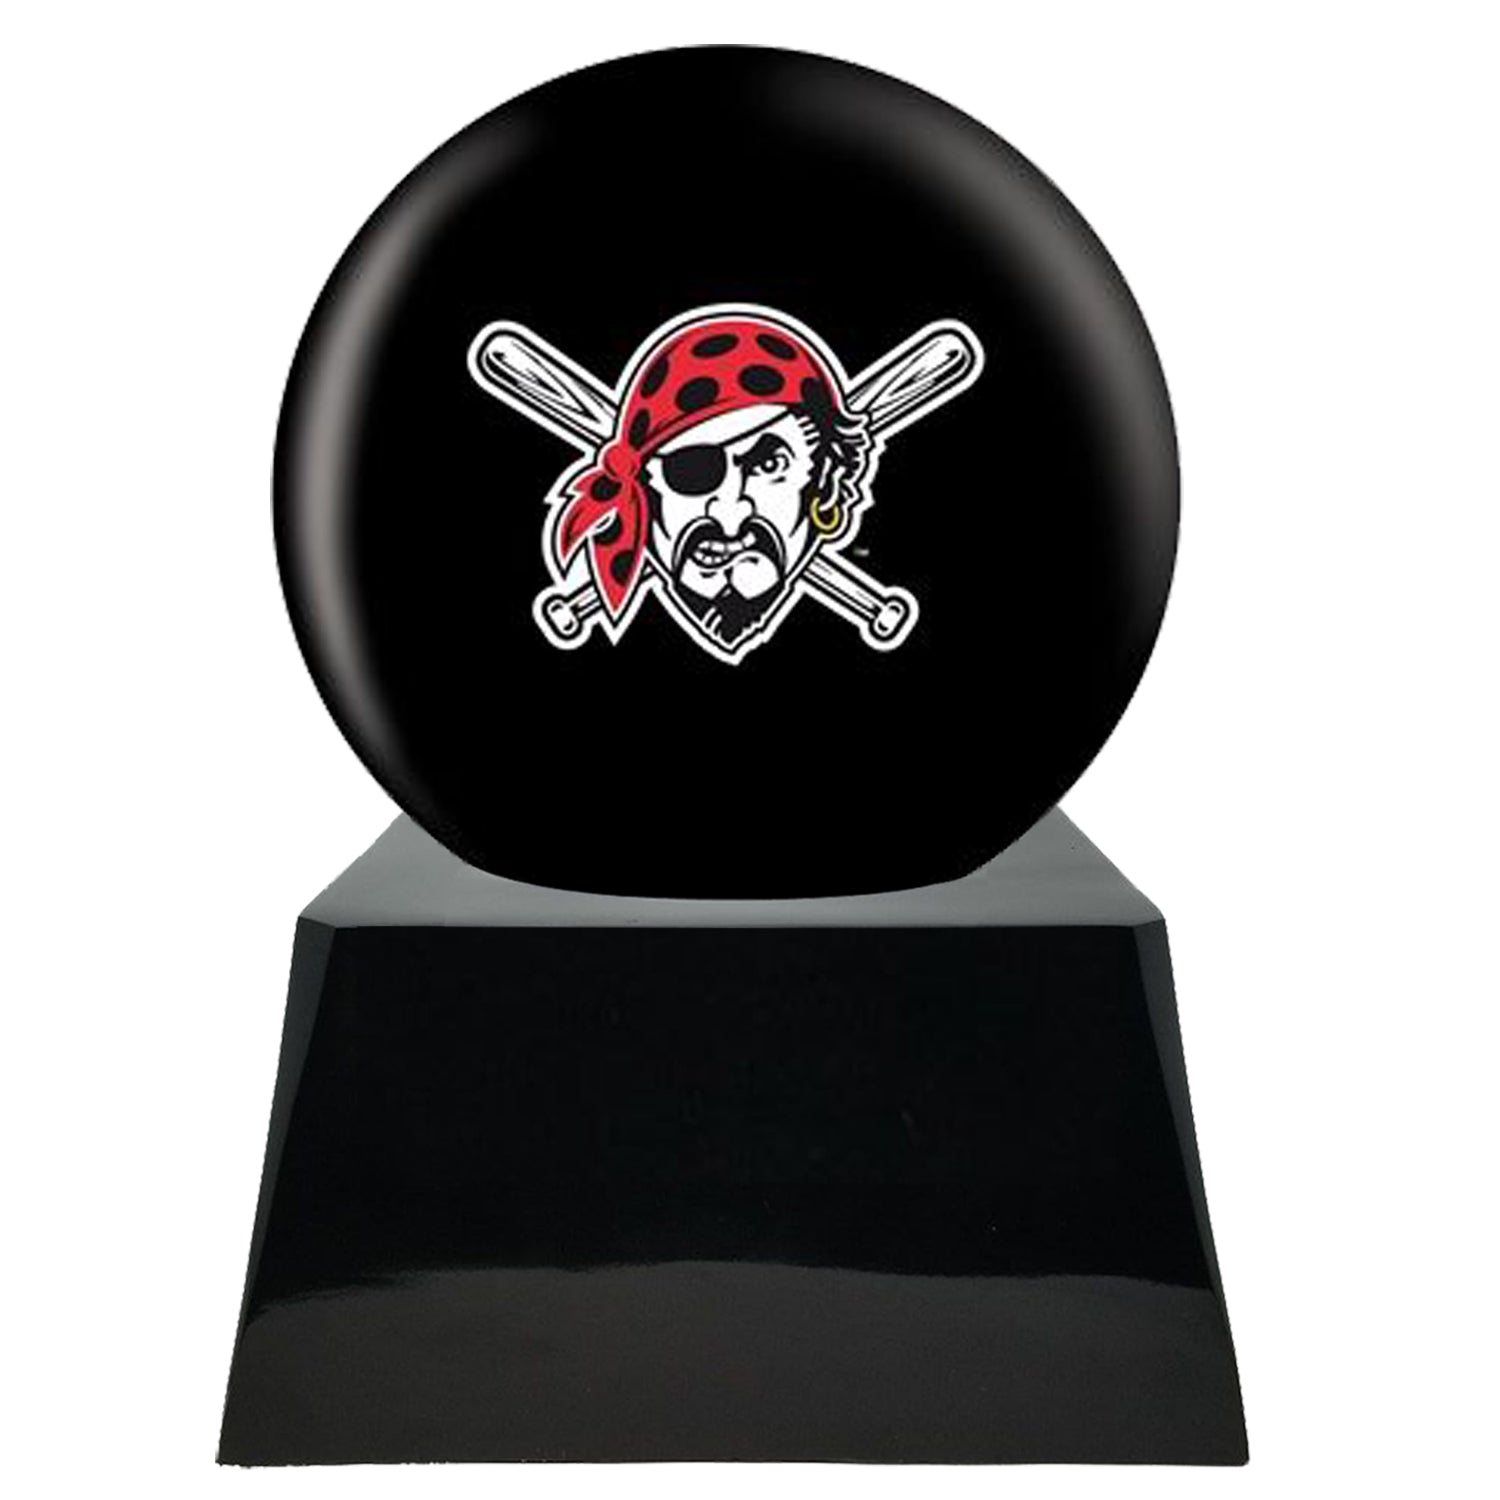 Baseball Cremation Urns For Human Ashes - Baseball Team Cremation Urn and Pittsburgh Pirates Ball Decor with custom metal plaque - Memorials4u